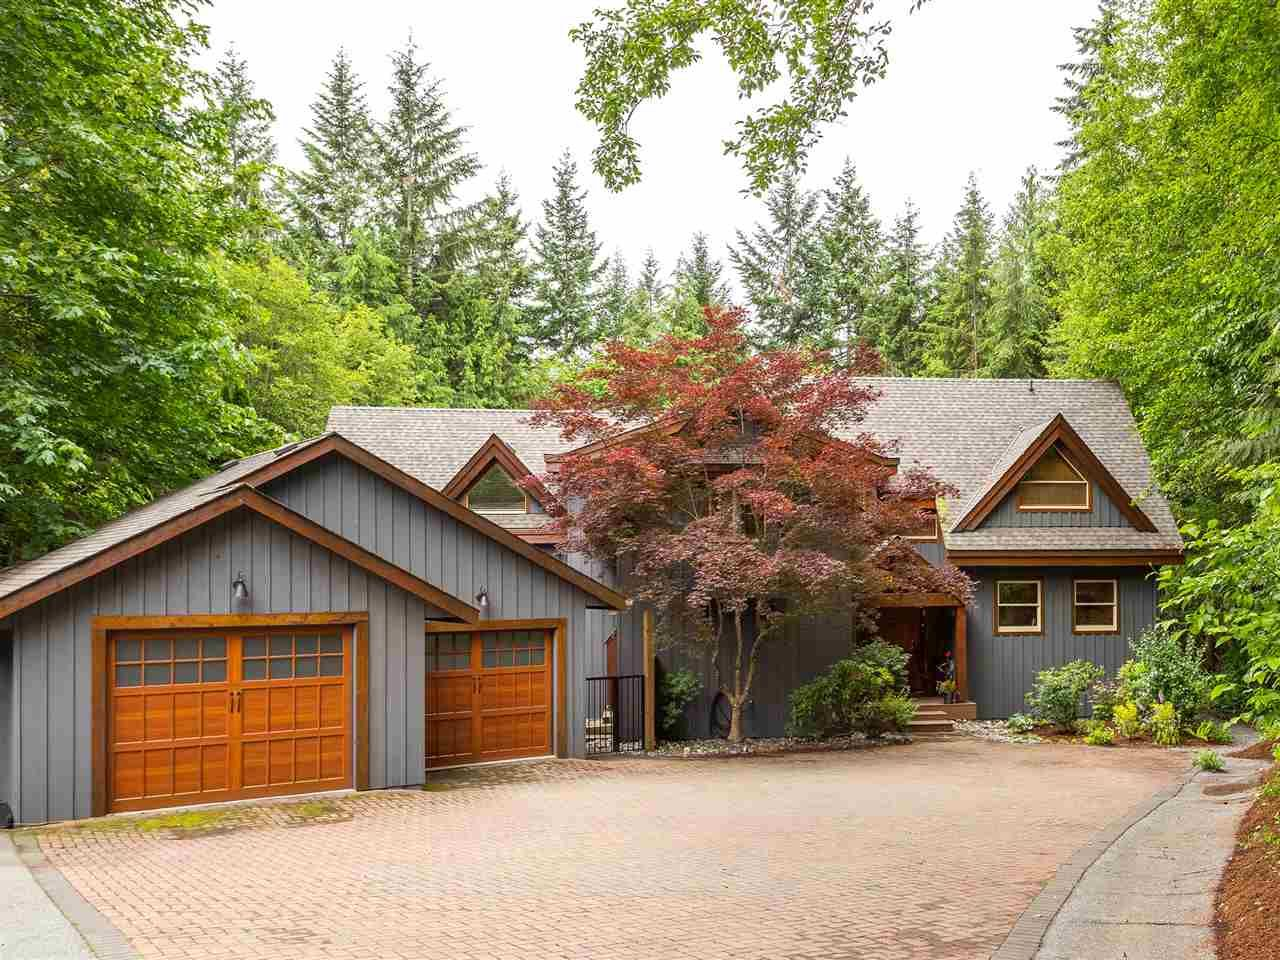 Main Photo: 2601 THE Boulevard in Squamish: Garibaldi Highlands House for sale : MLS®# R2176534